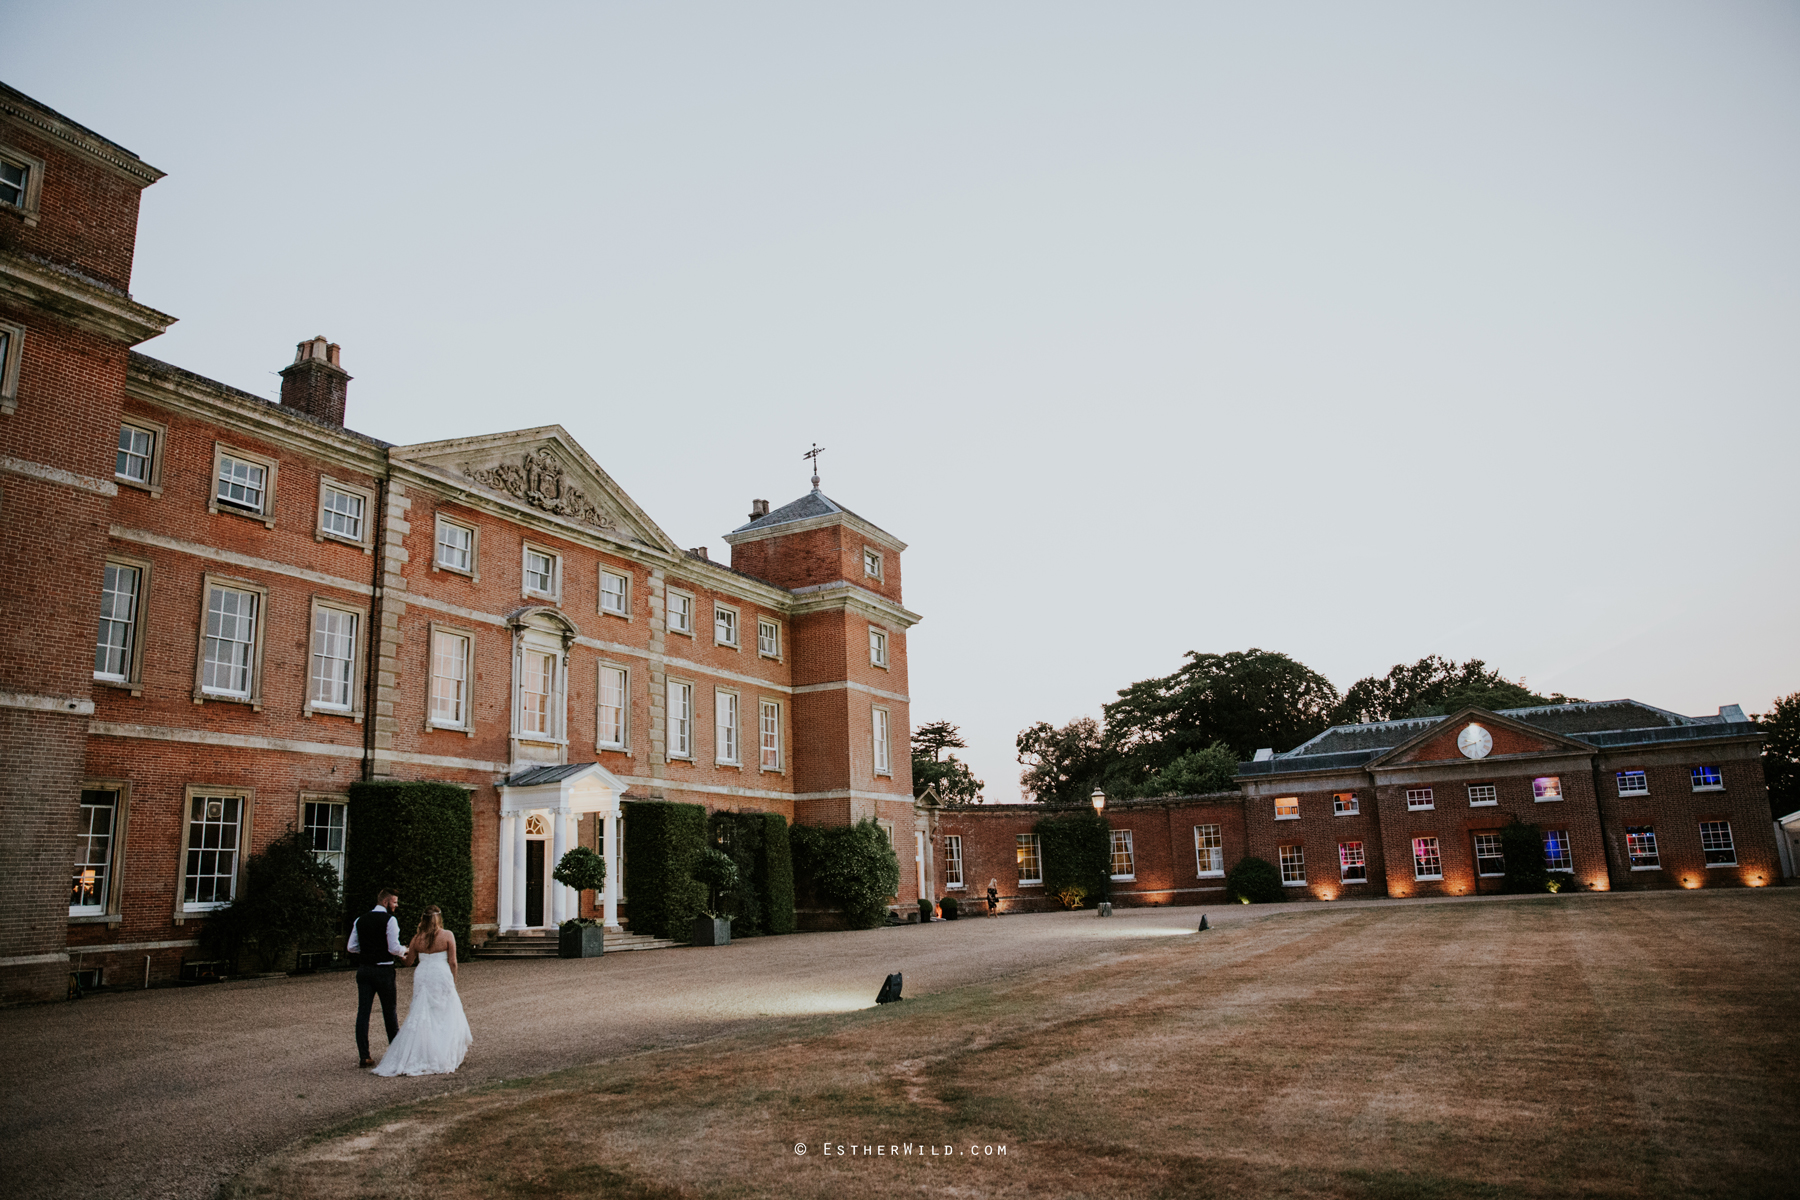 Kimberley_Hall_Wedding_Norfolk_Photography_Esther_Wild_IMG_2875.jpg